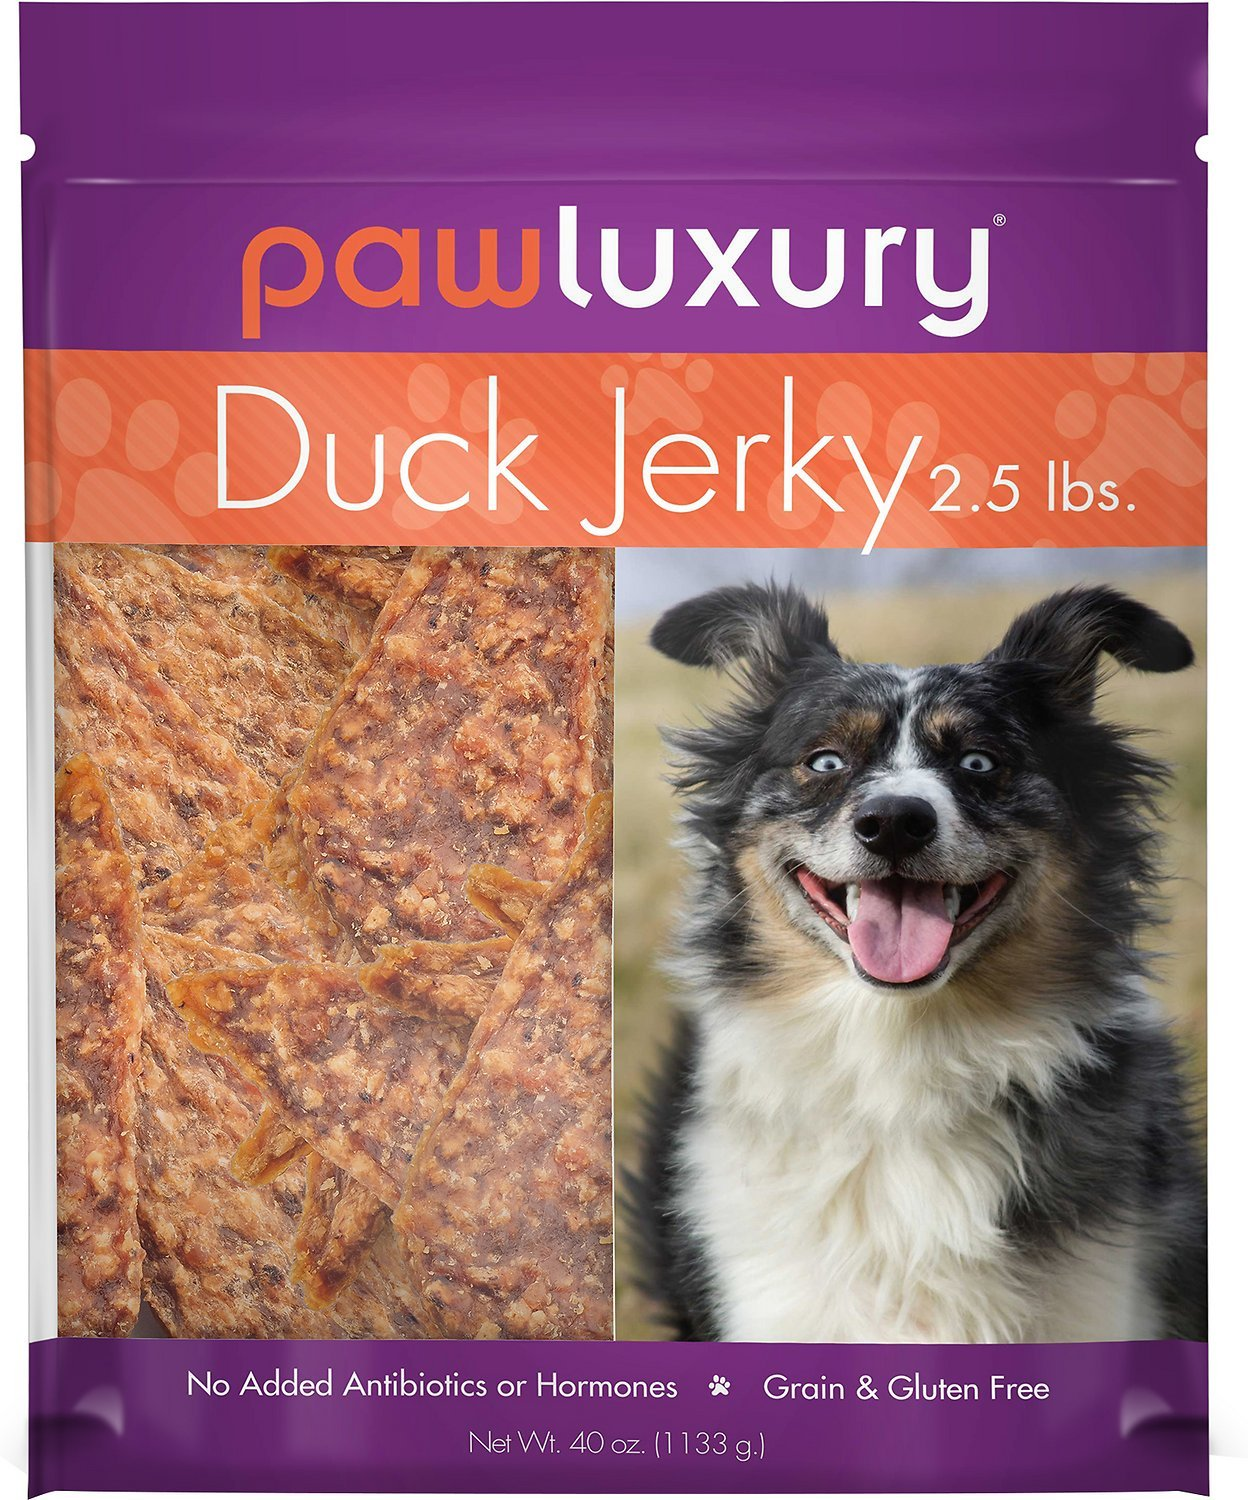 Pawluxury Duck 100% All-Natural Gluten/Grain/Antibiotic/Hormone Free Jerky Dog Treats - 2.5 lbs (40 oz.) Bag